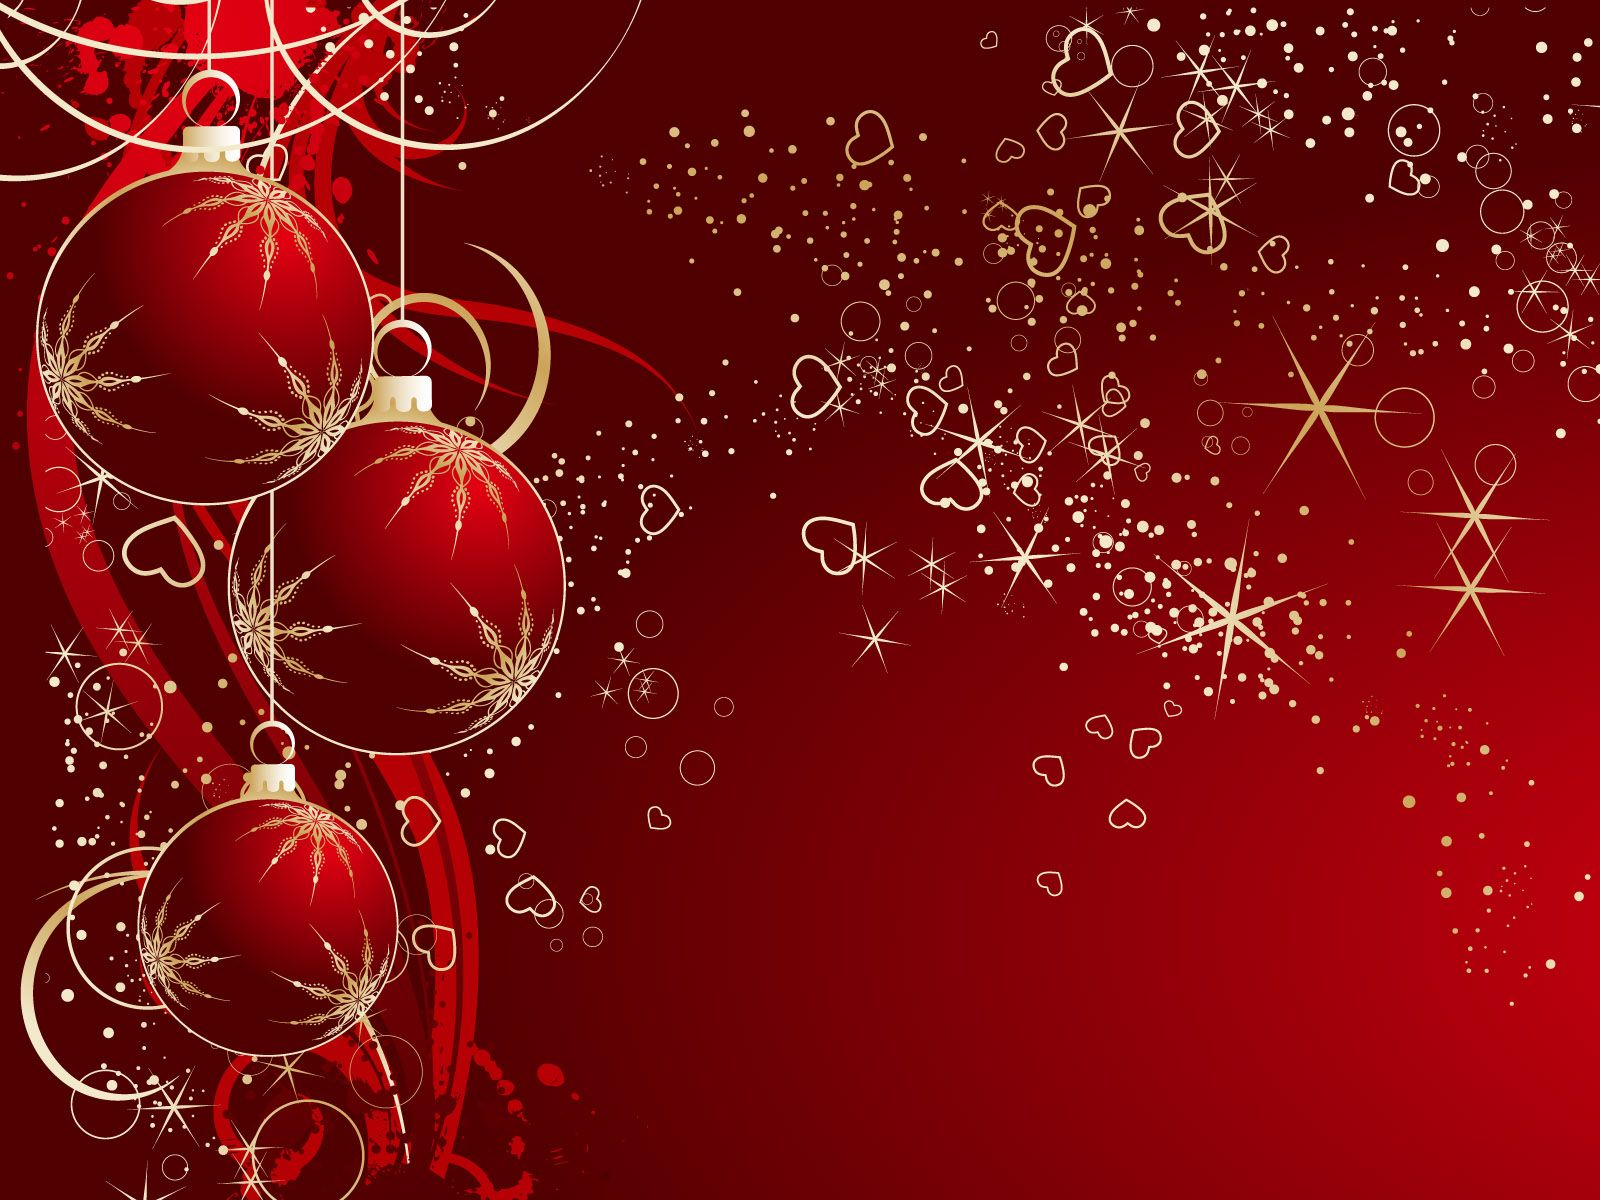 www.istockphoto.com chrismas back ground wall paper - Yahoo Image ...